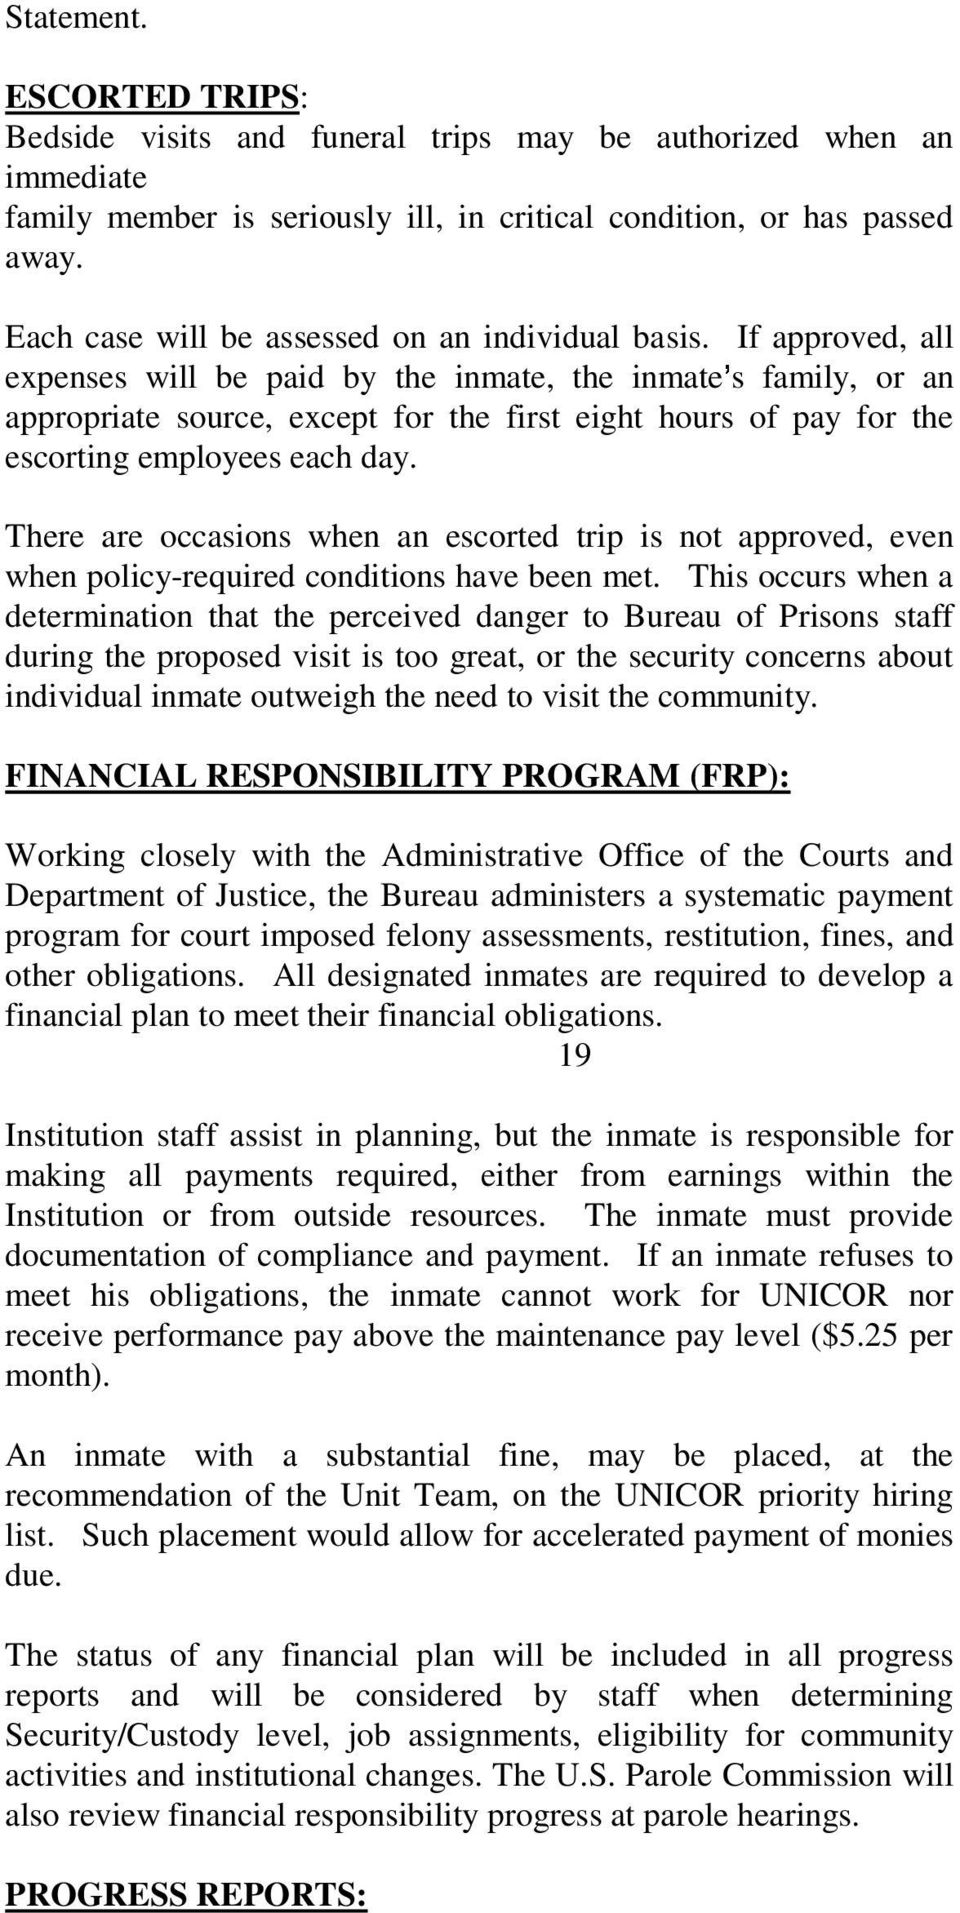 If approved, all expenses will be paid by the inmate, the inmate s family, or an appropriate source, except for the first eight hours of pay for the escorting employees each day.